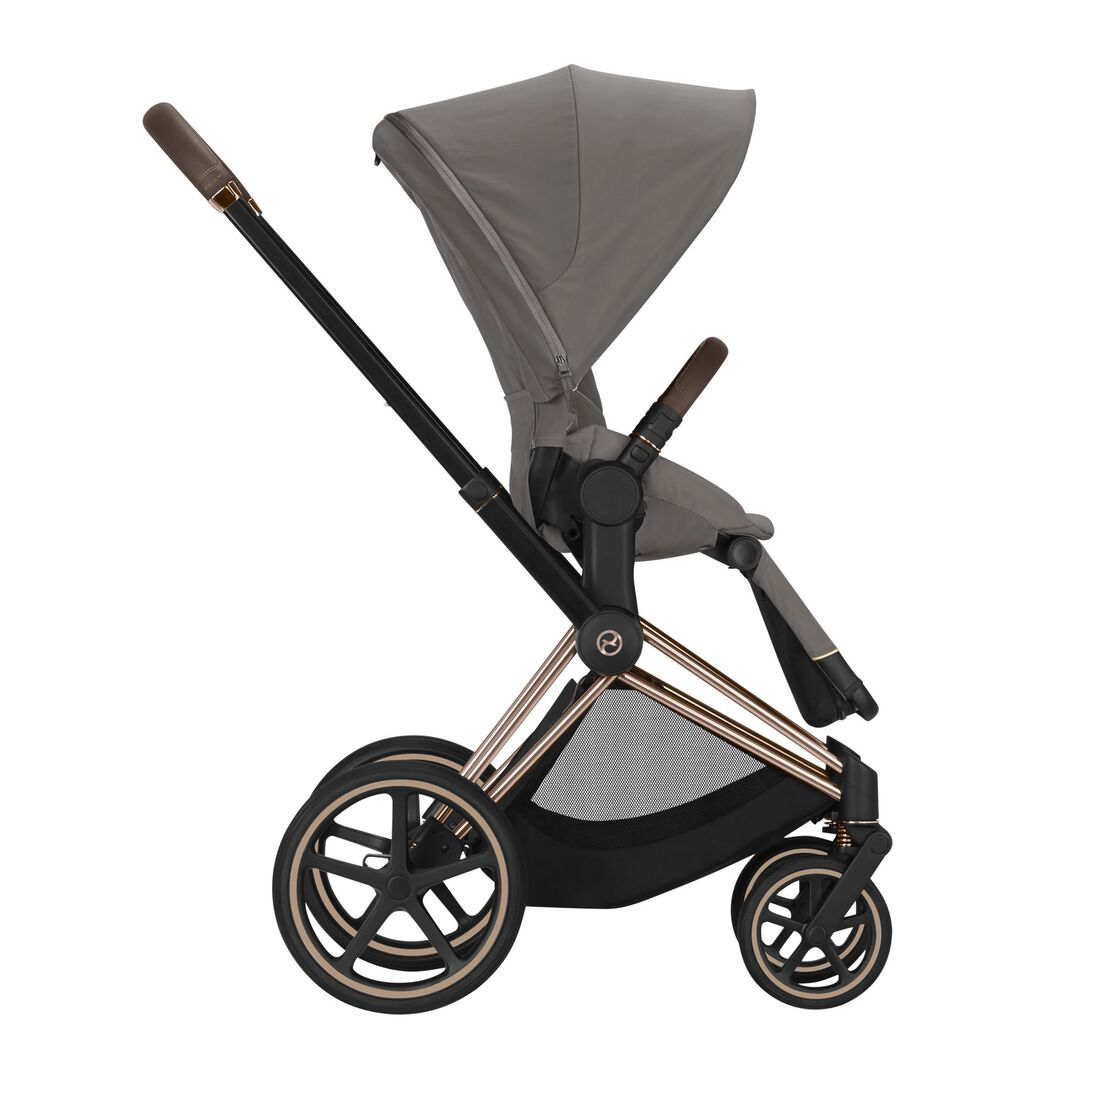 CYBEX Priam Seat Pack - Soho Grey in Soho Grey large image number 3